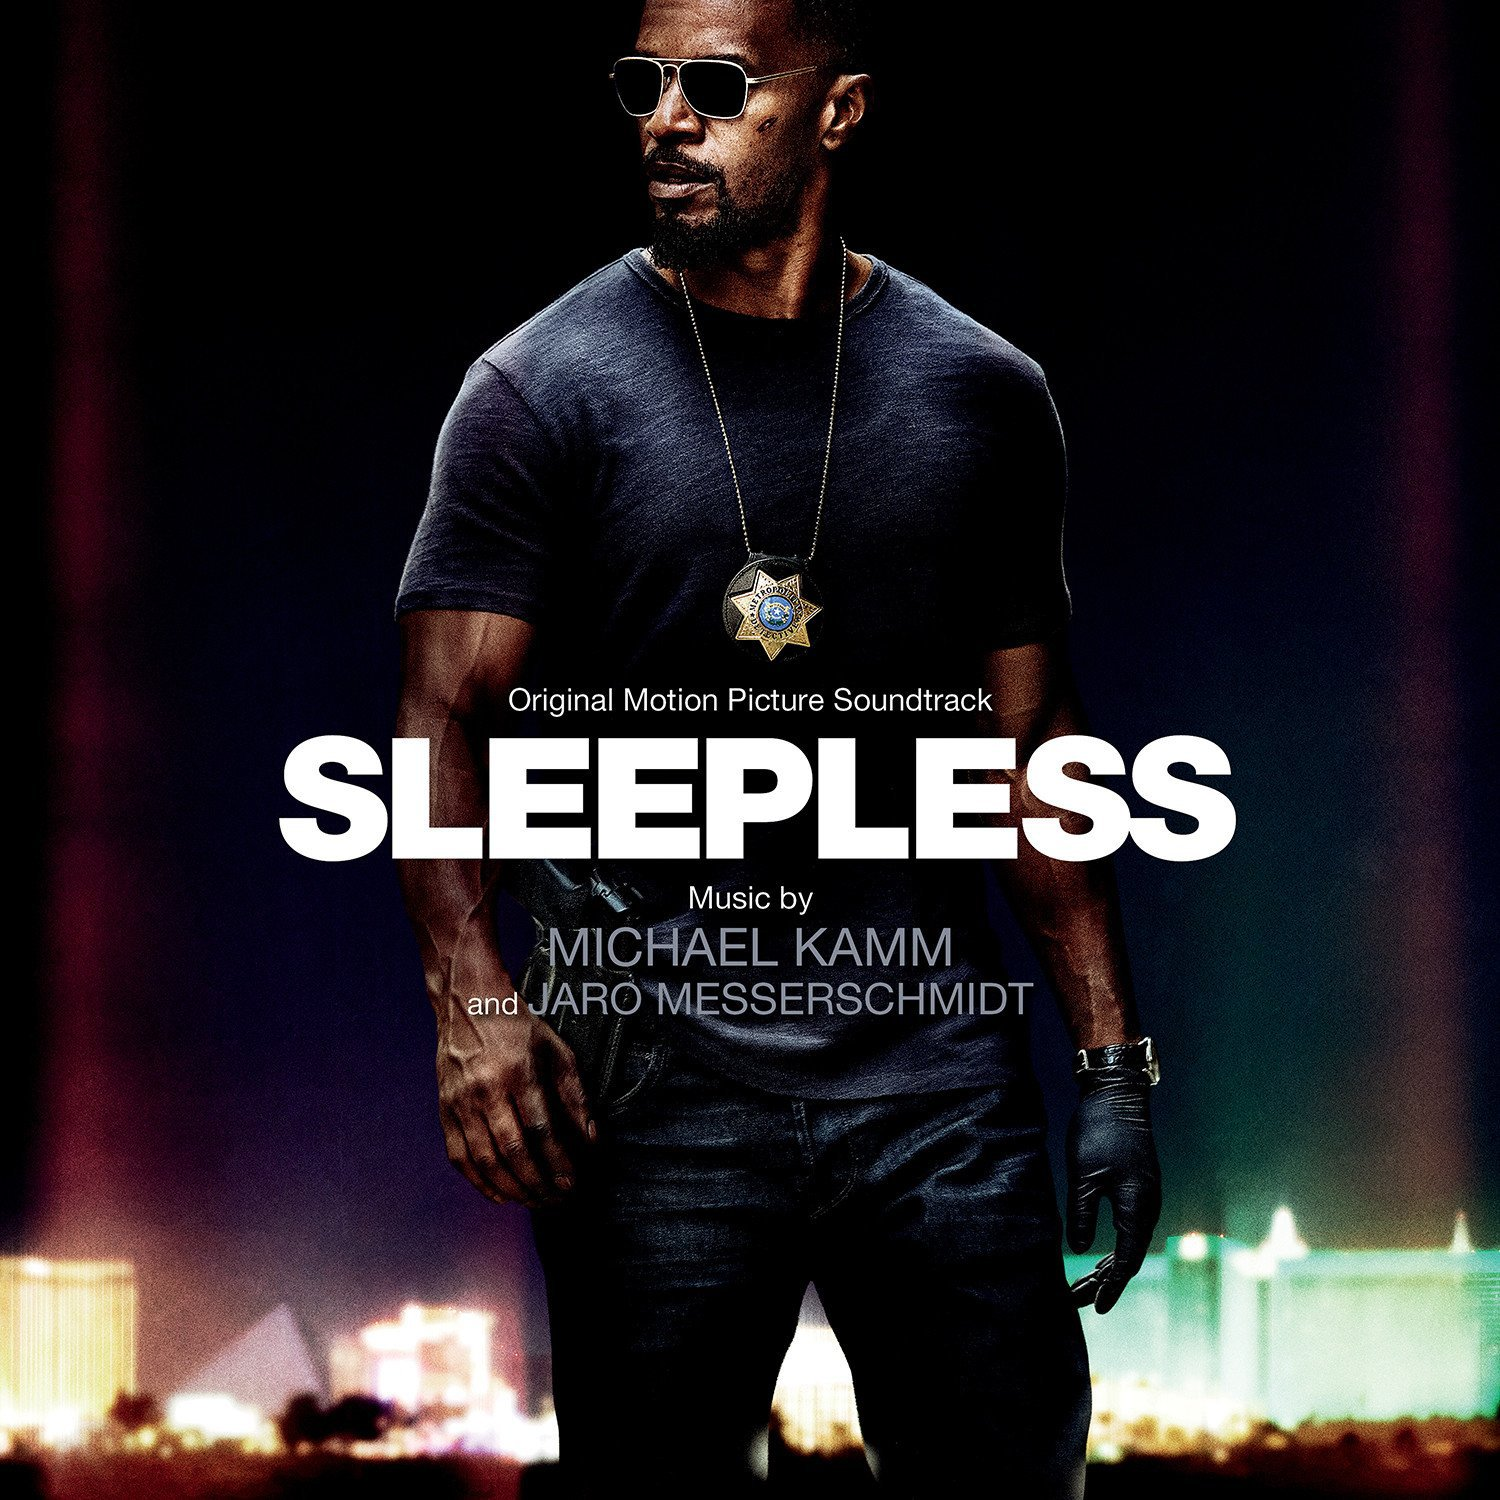 CD : Michael Kamm - Sleepless (CD)